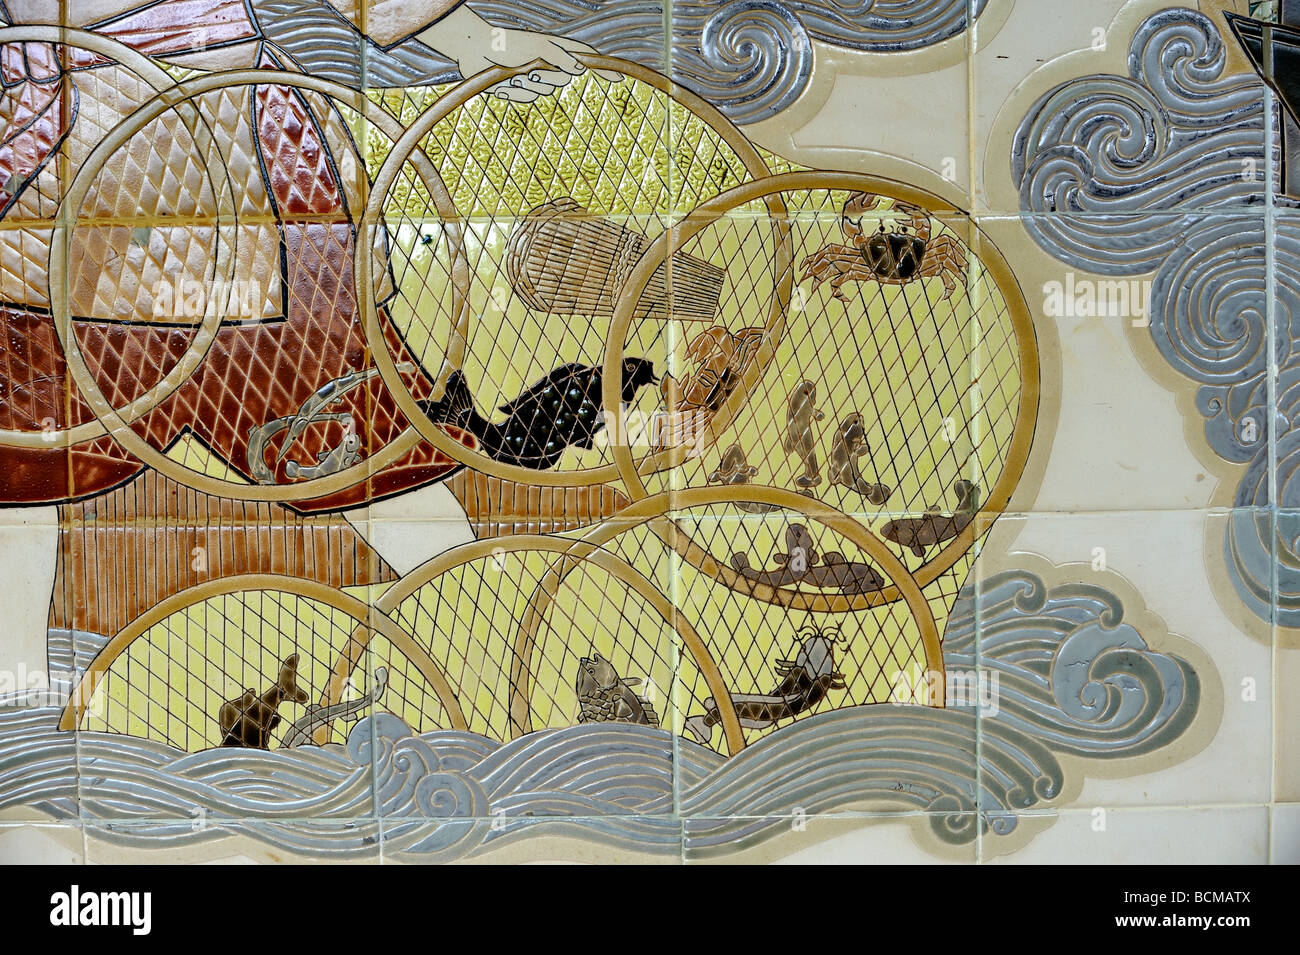 Montage of ceramic tiles depicting scenes of everyday life. Main ...